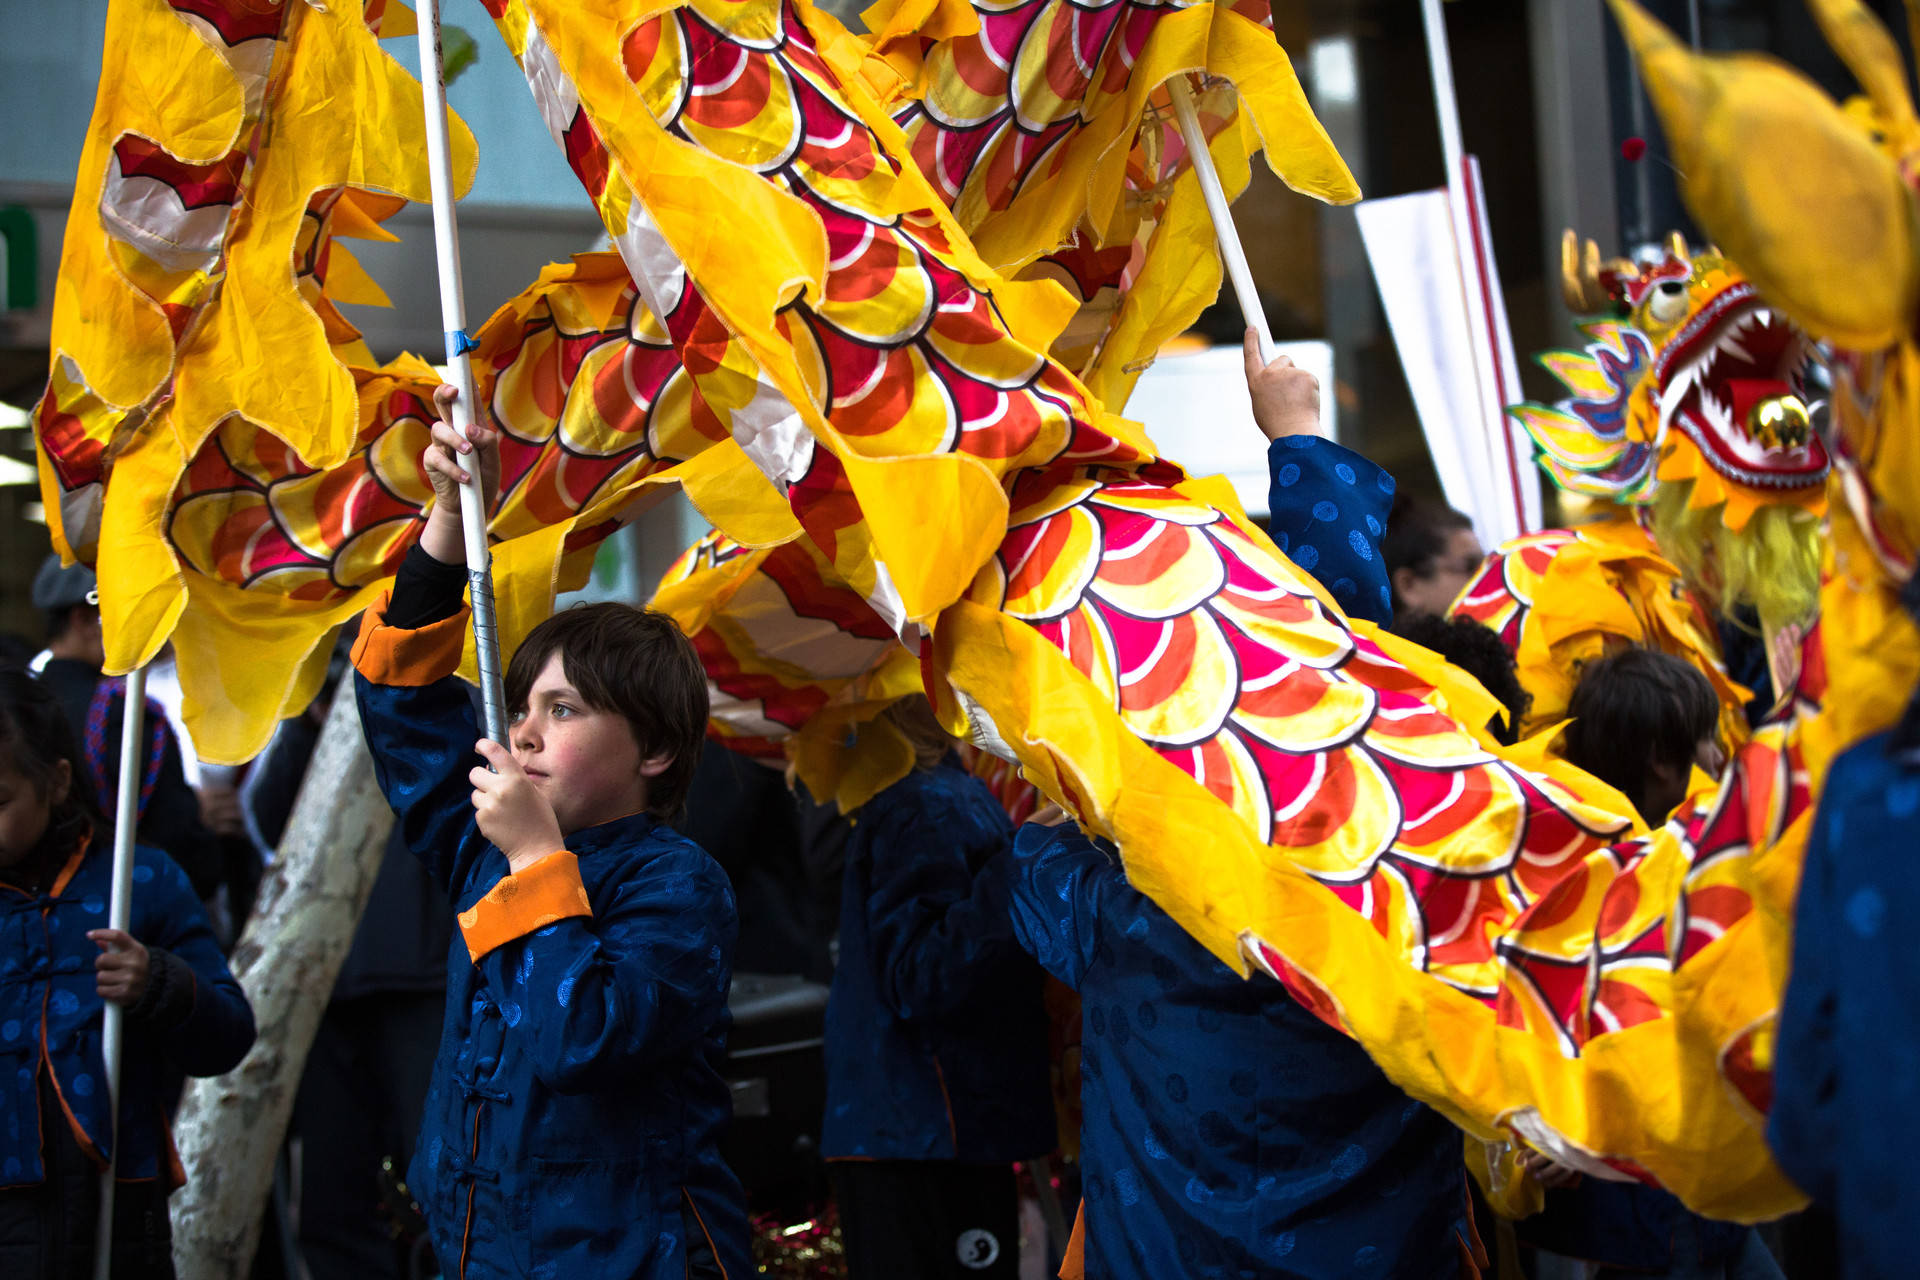 The Lunar New Year Parade kicked off on February 24, 2018 in celebration of the start of a new lunar calendar. The parade has taken place in San Francisco since the 18th century and is the largest celebration of Asian culture outside of Asia. Samantha Shanahan/KQED